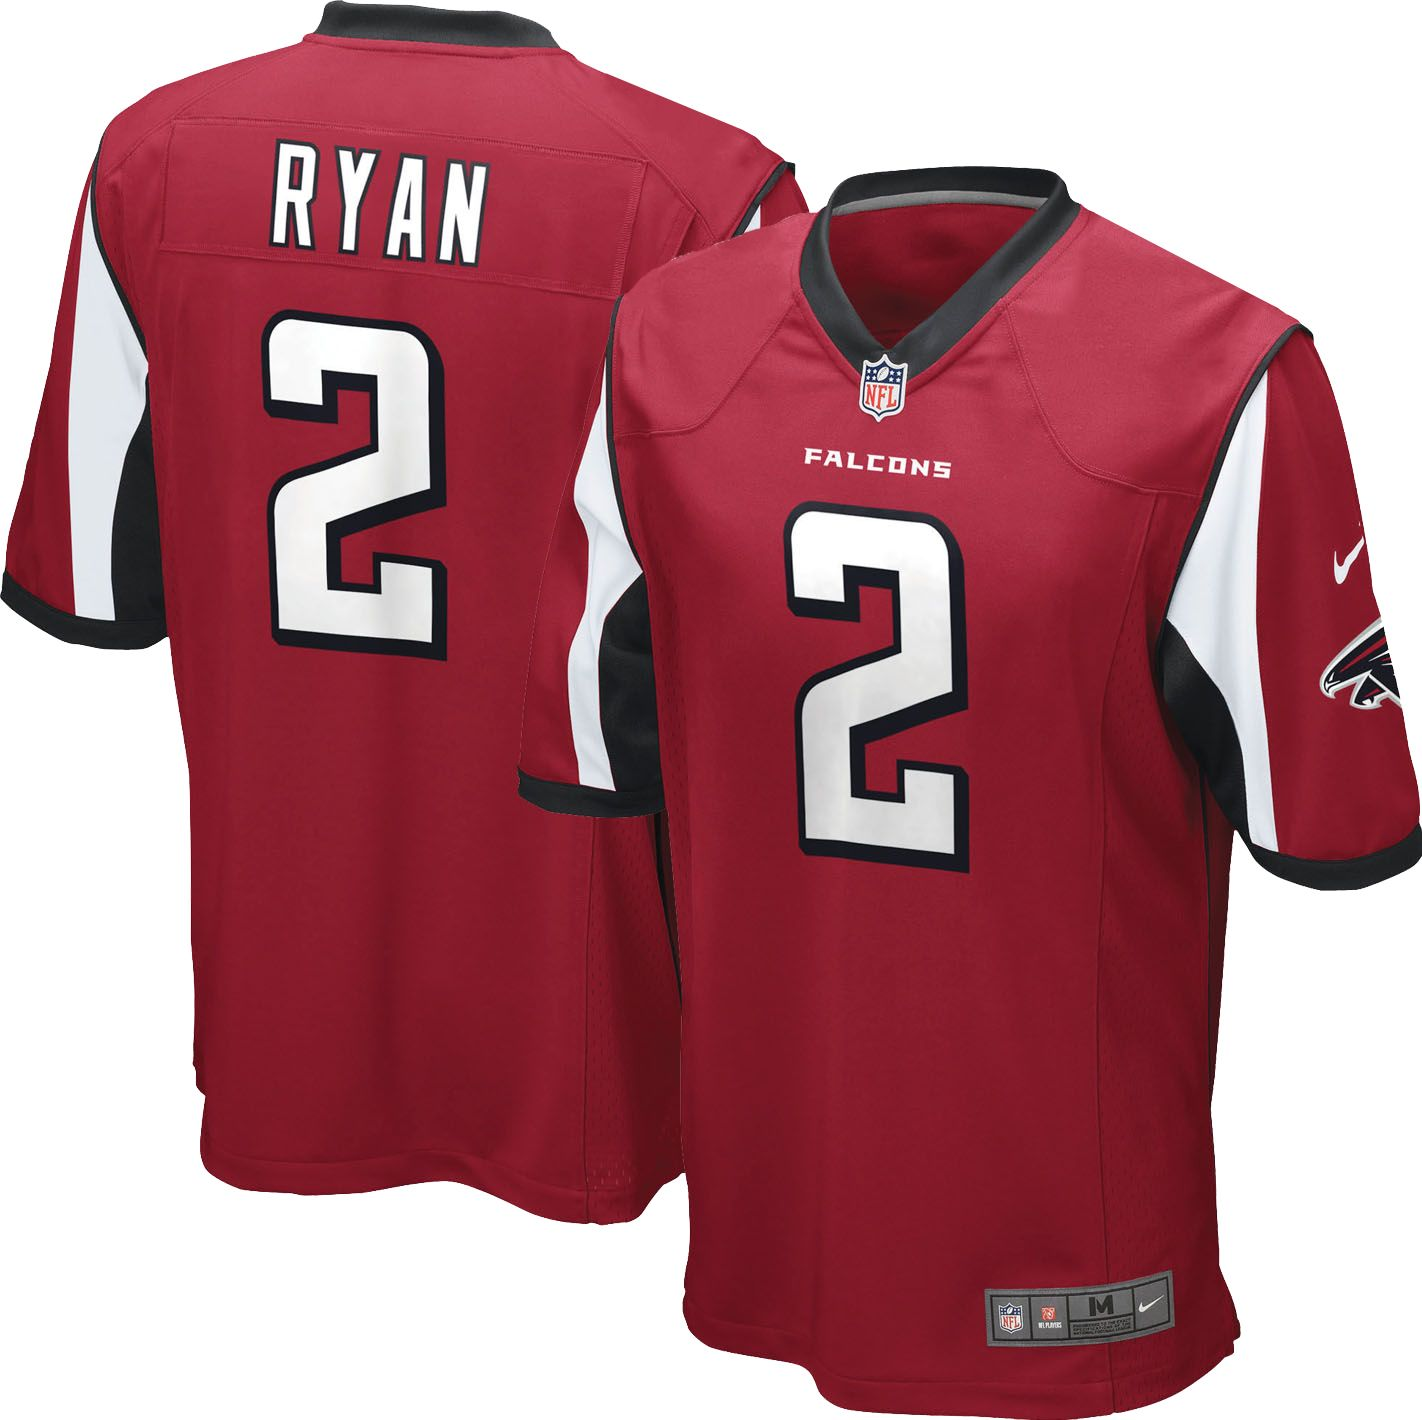 07f86cbb5 pink matt ryan womens jersey nfl atlanta falcons 2 game new be luvd ...